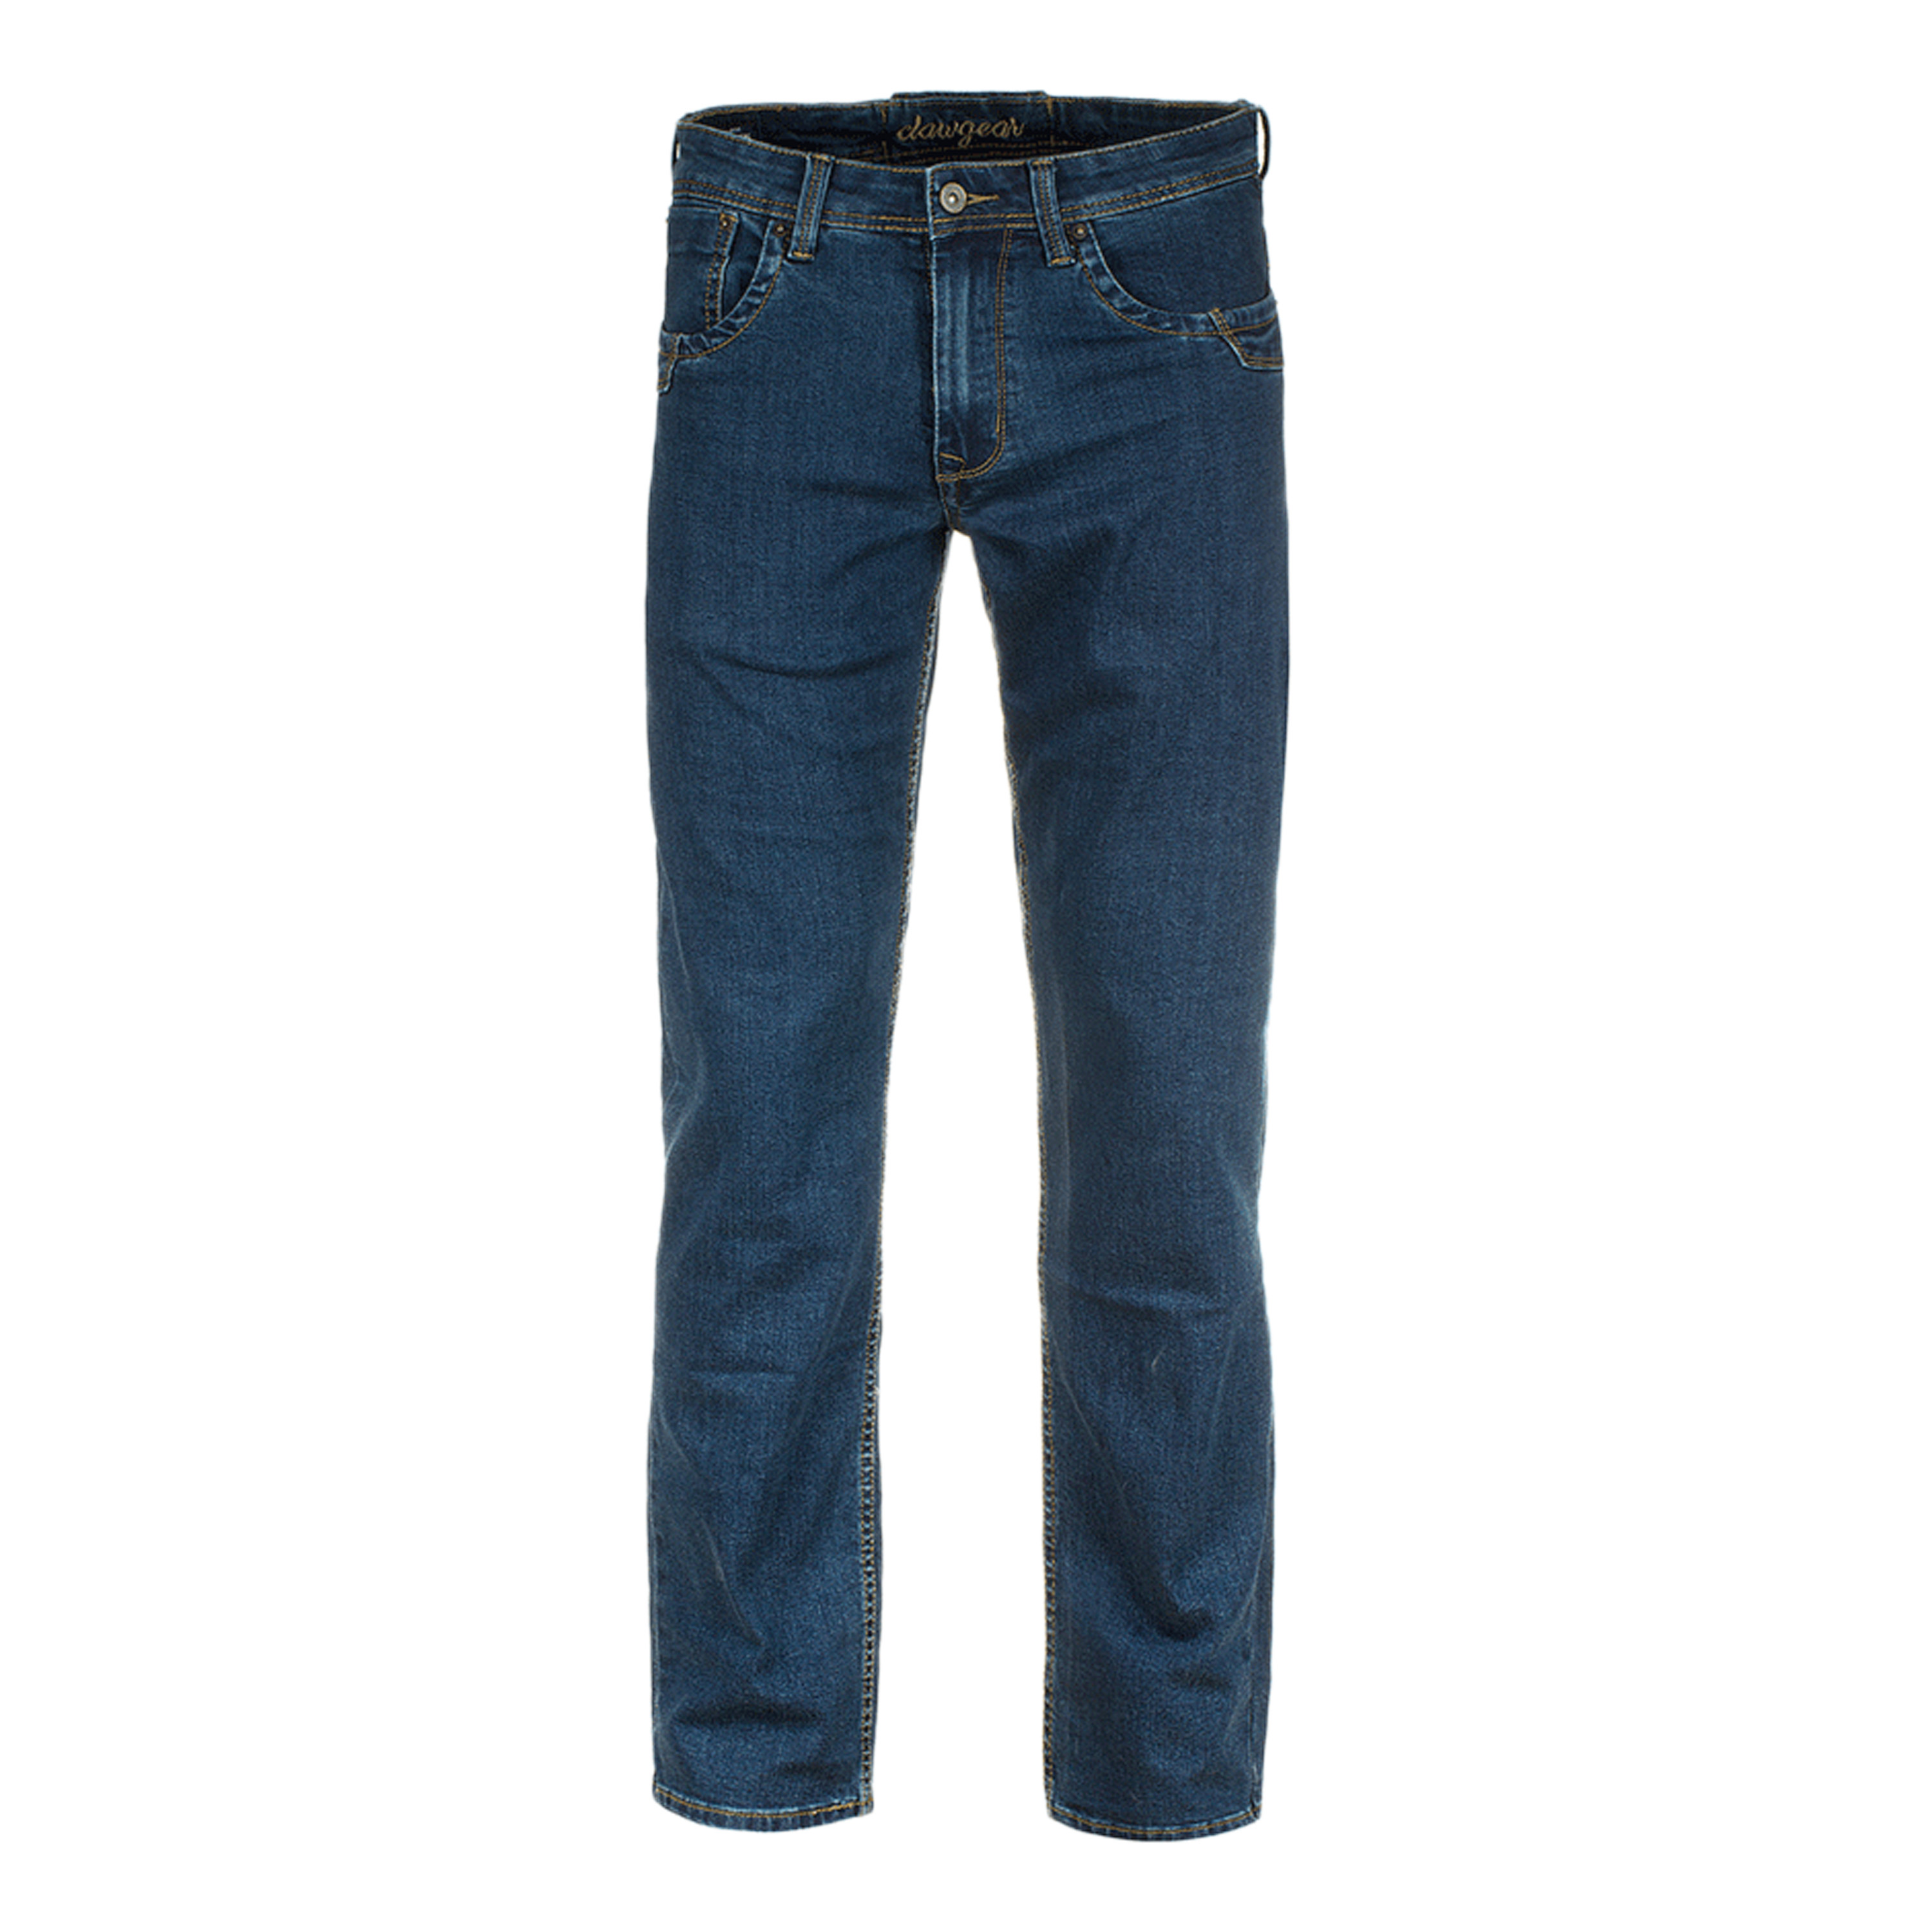 ClawGear Jeans Blue Denim Tactical Flex sapphire washed